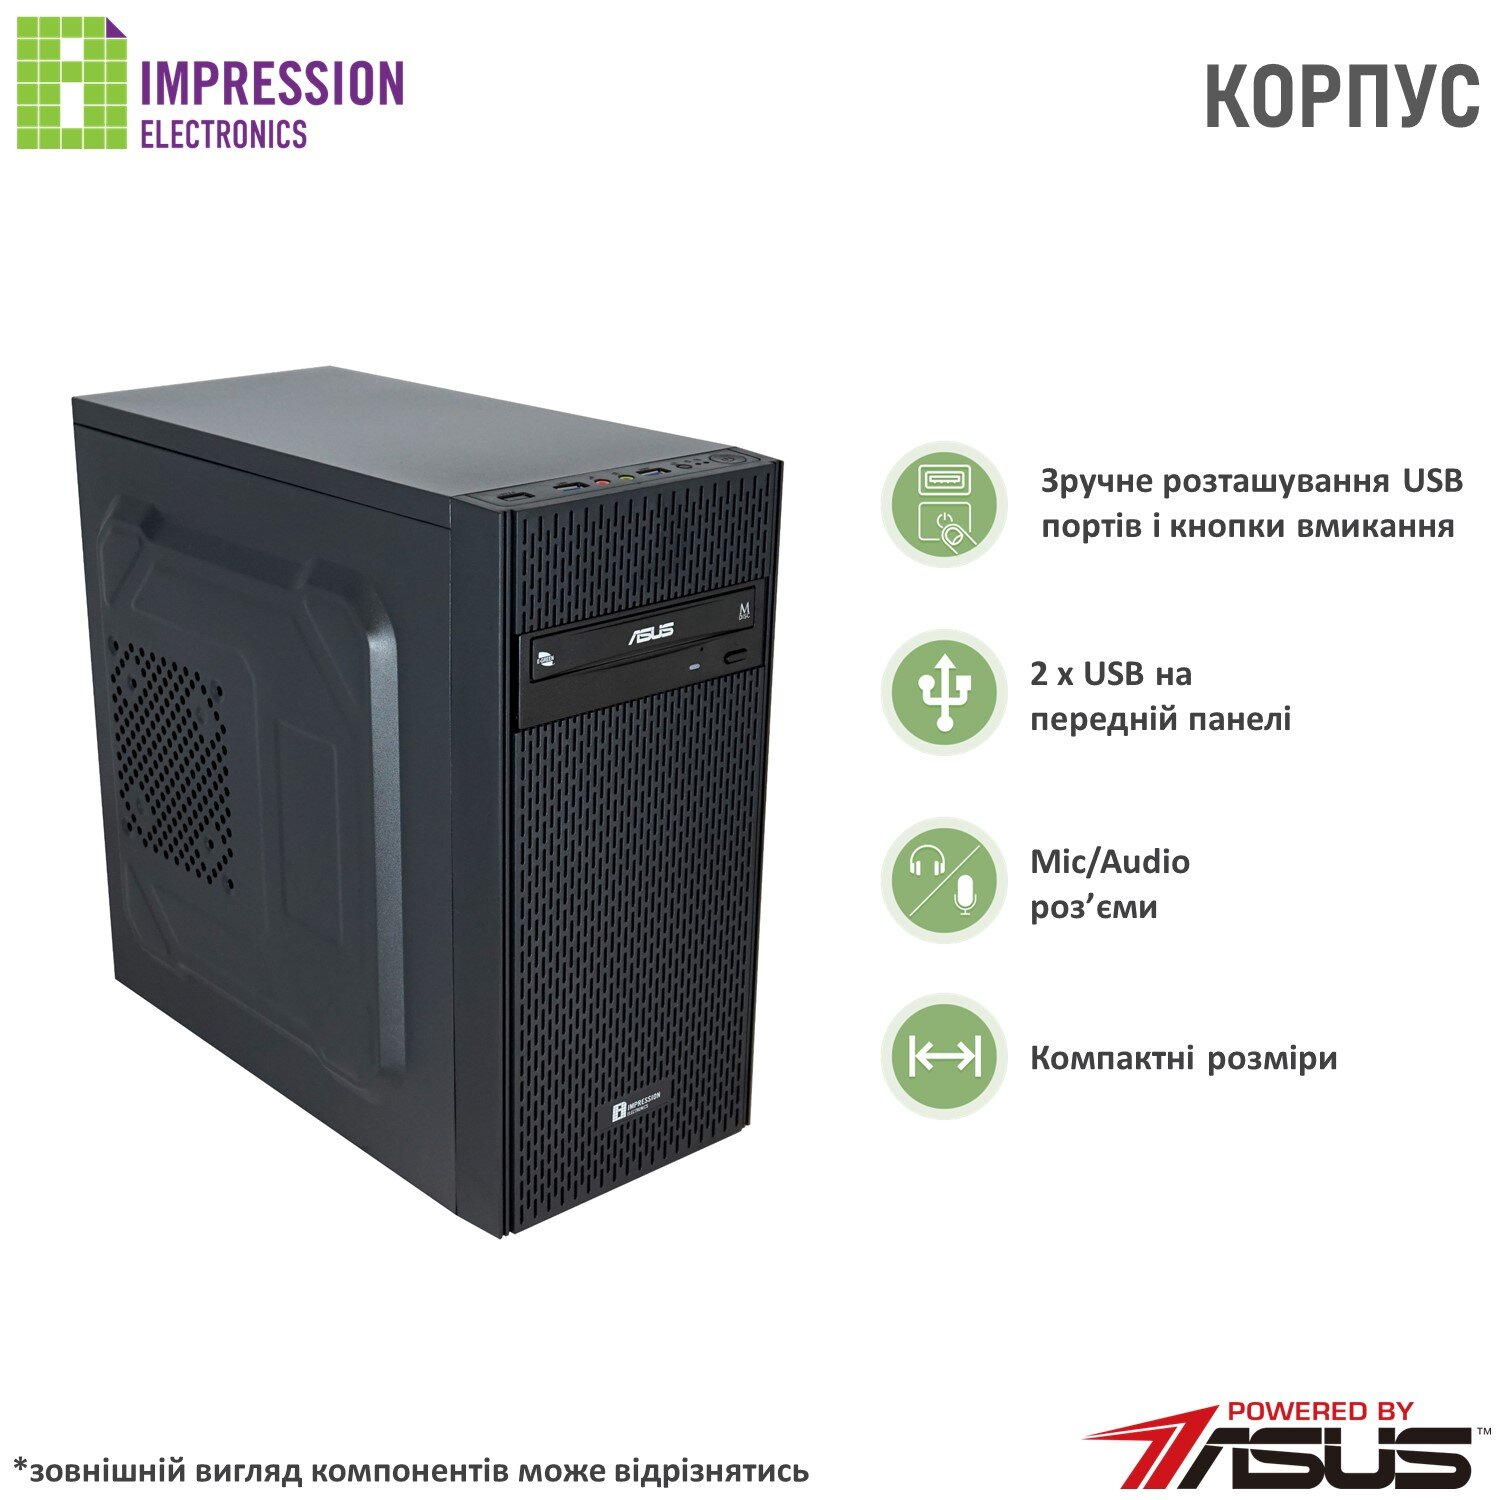 Комп'ютер Impression Business A0019